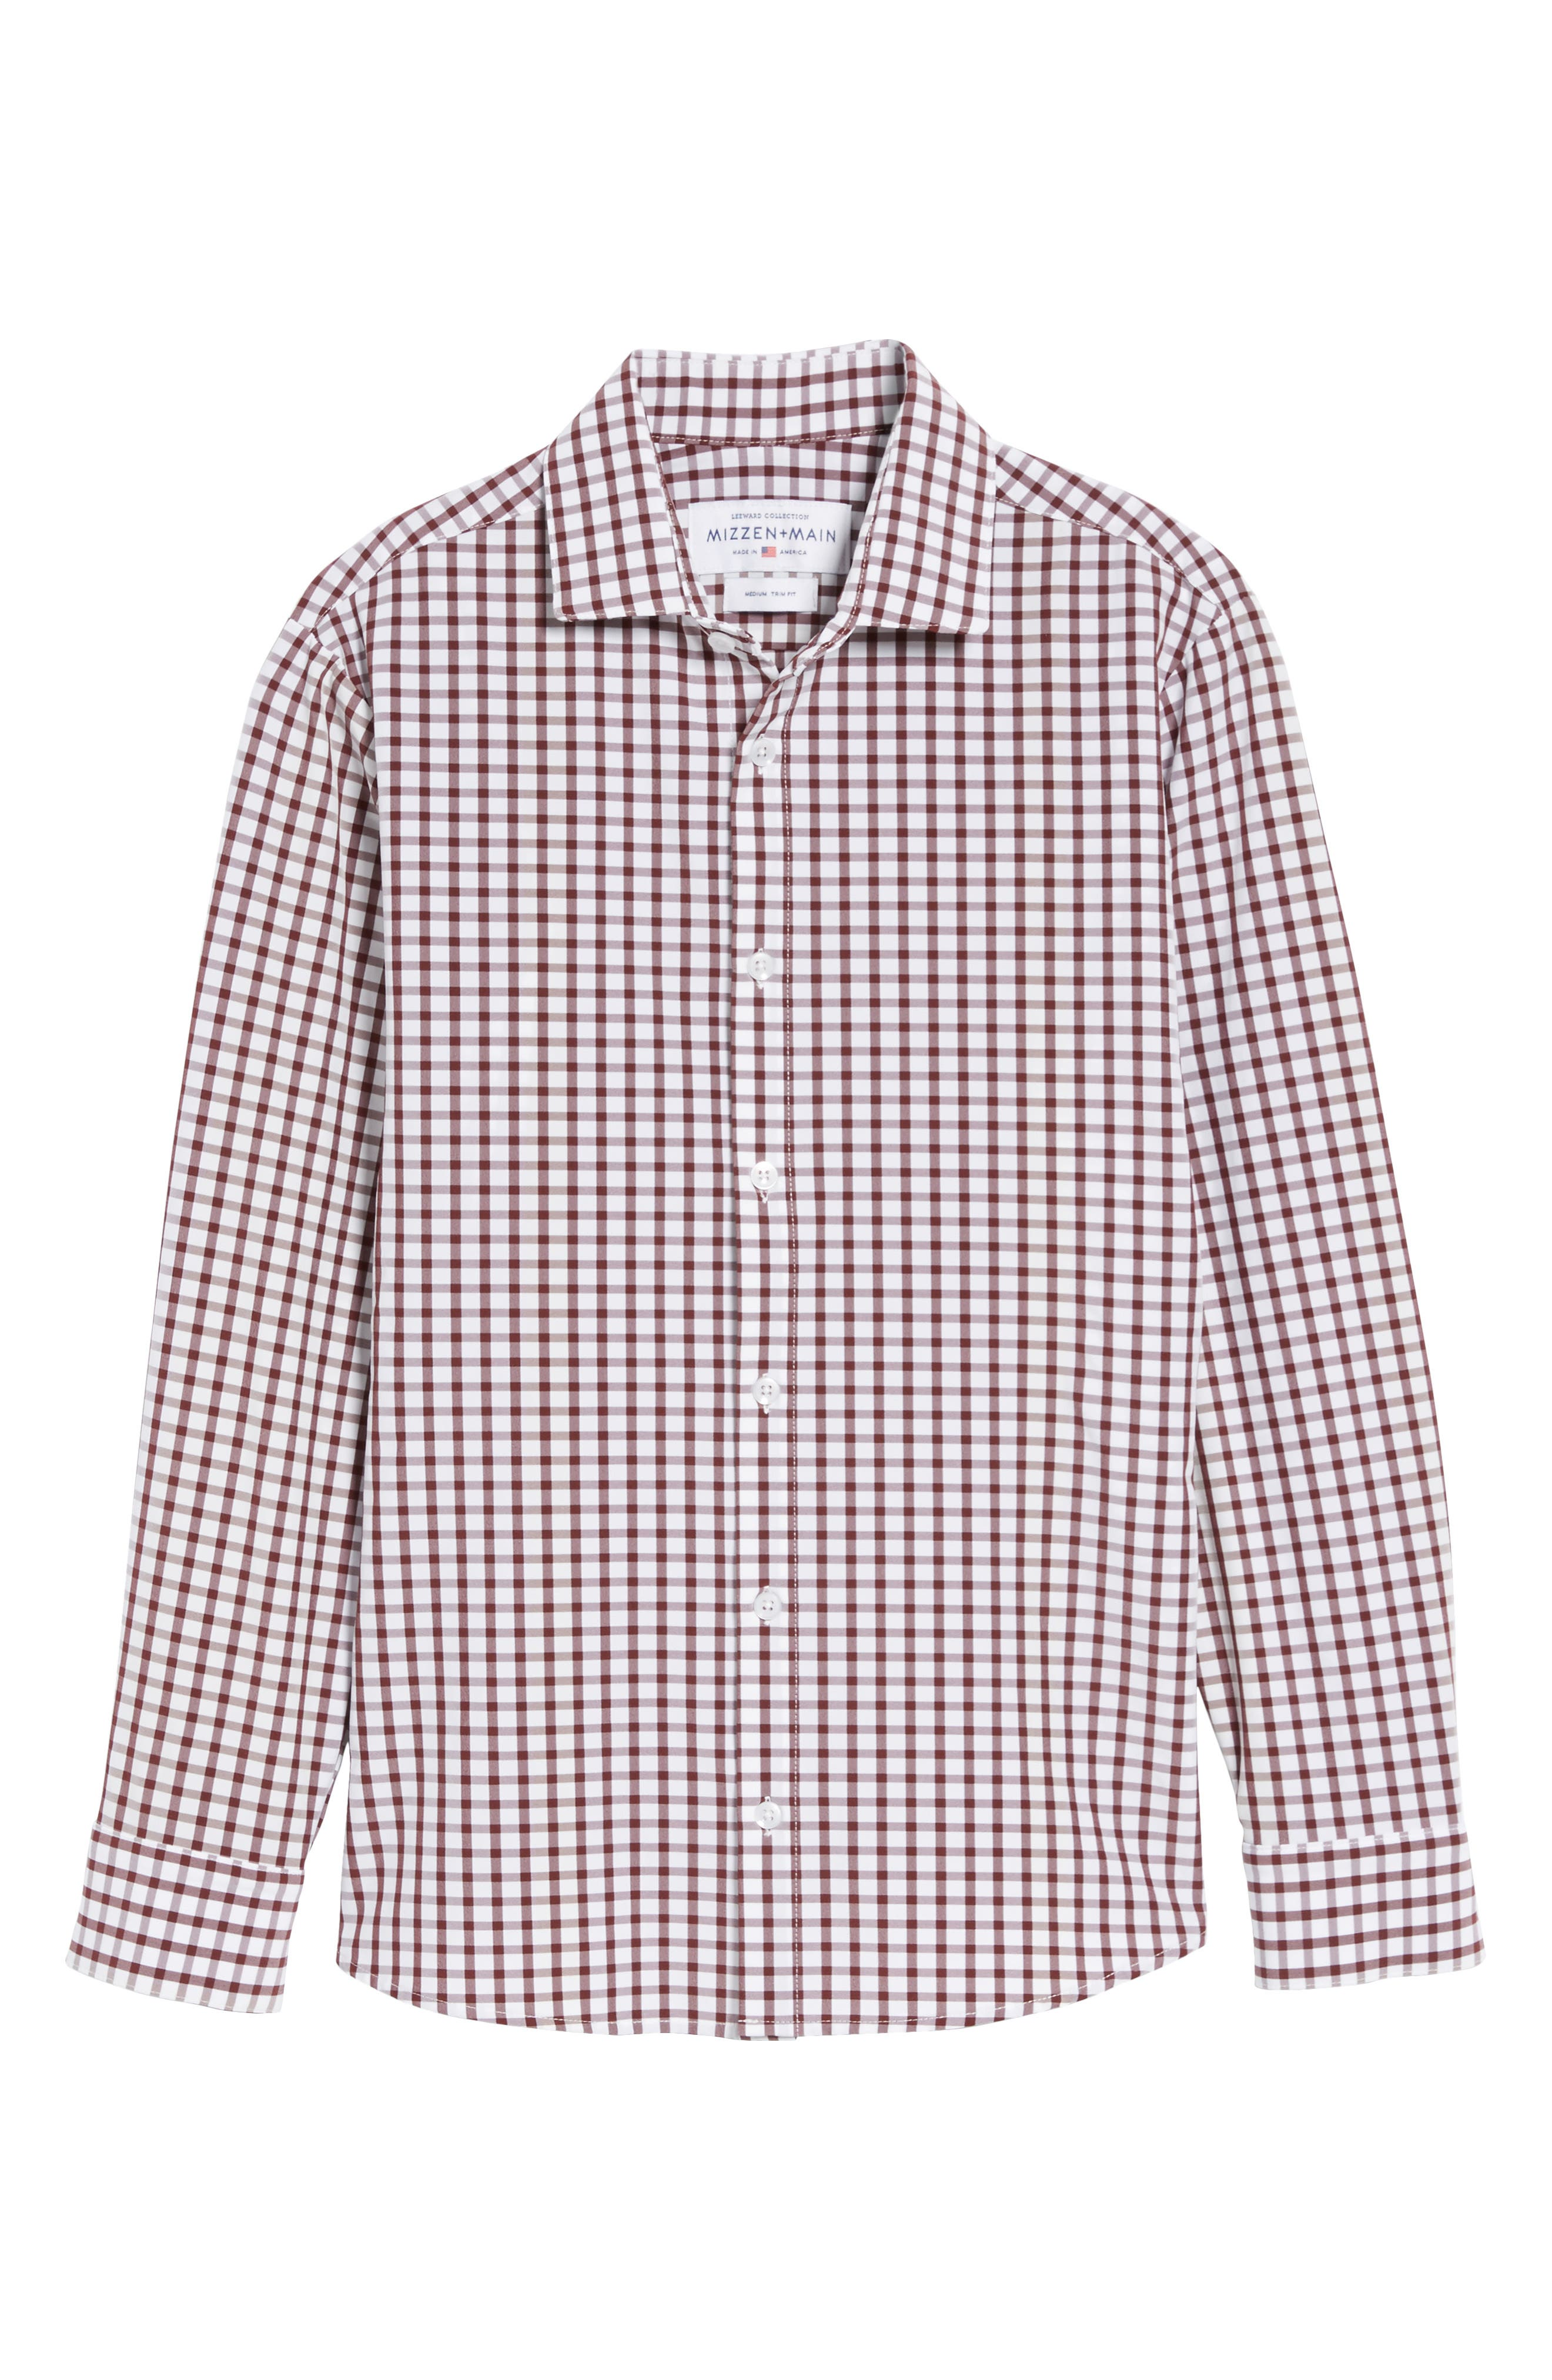 Cooper Check Performance Sport Shirt,                             Alternate thumbnail 6, color,                             Red